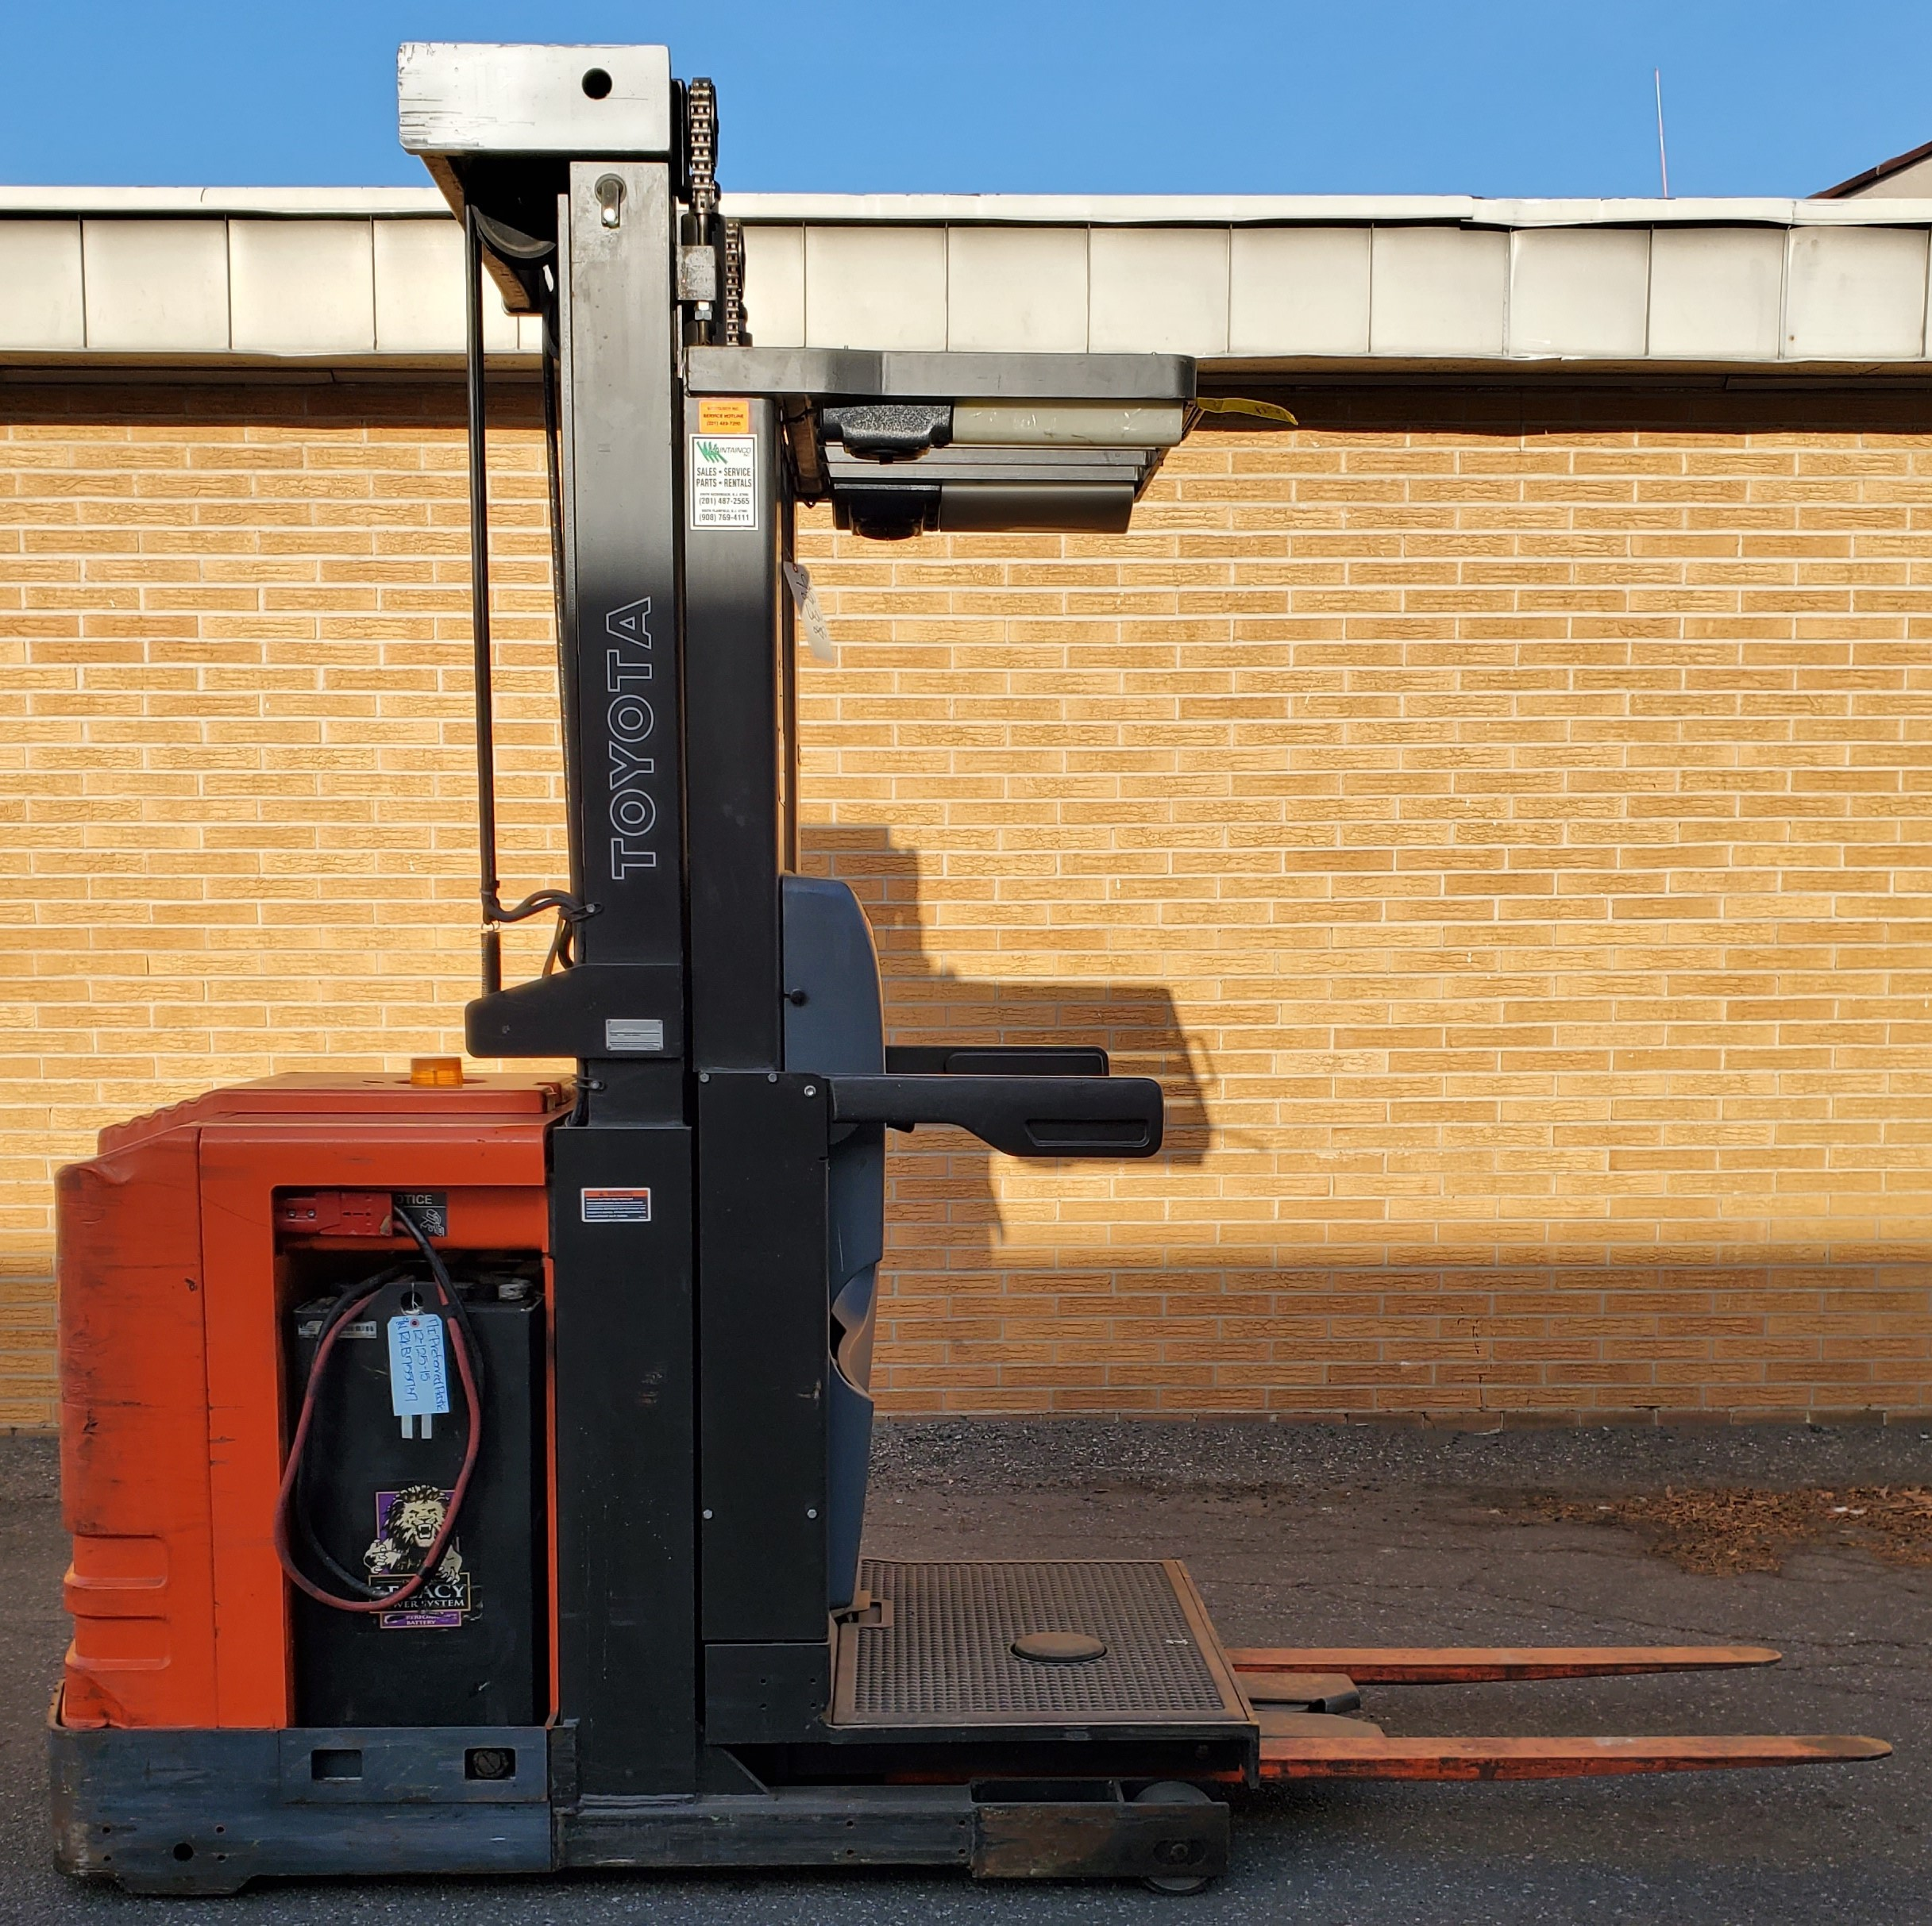 Used, 2012, Toyota Industrial Equipment, 7BPUE15, Forklifts / Lift Trucks